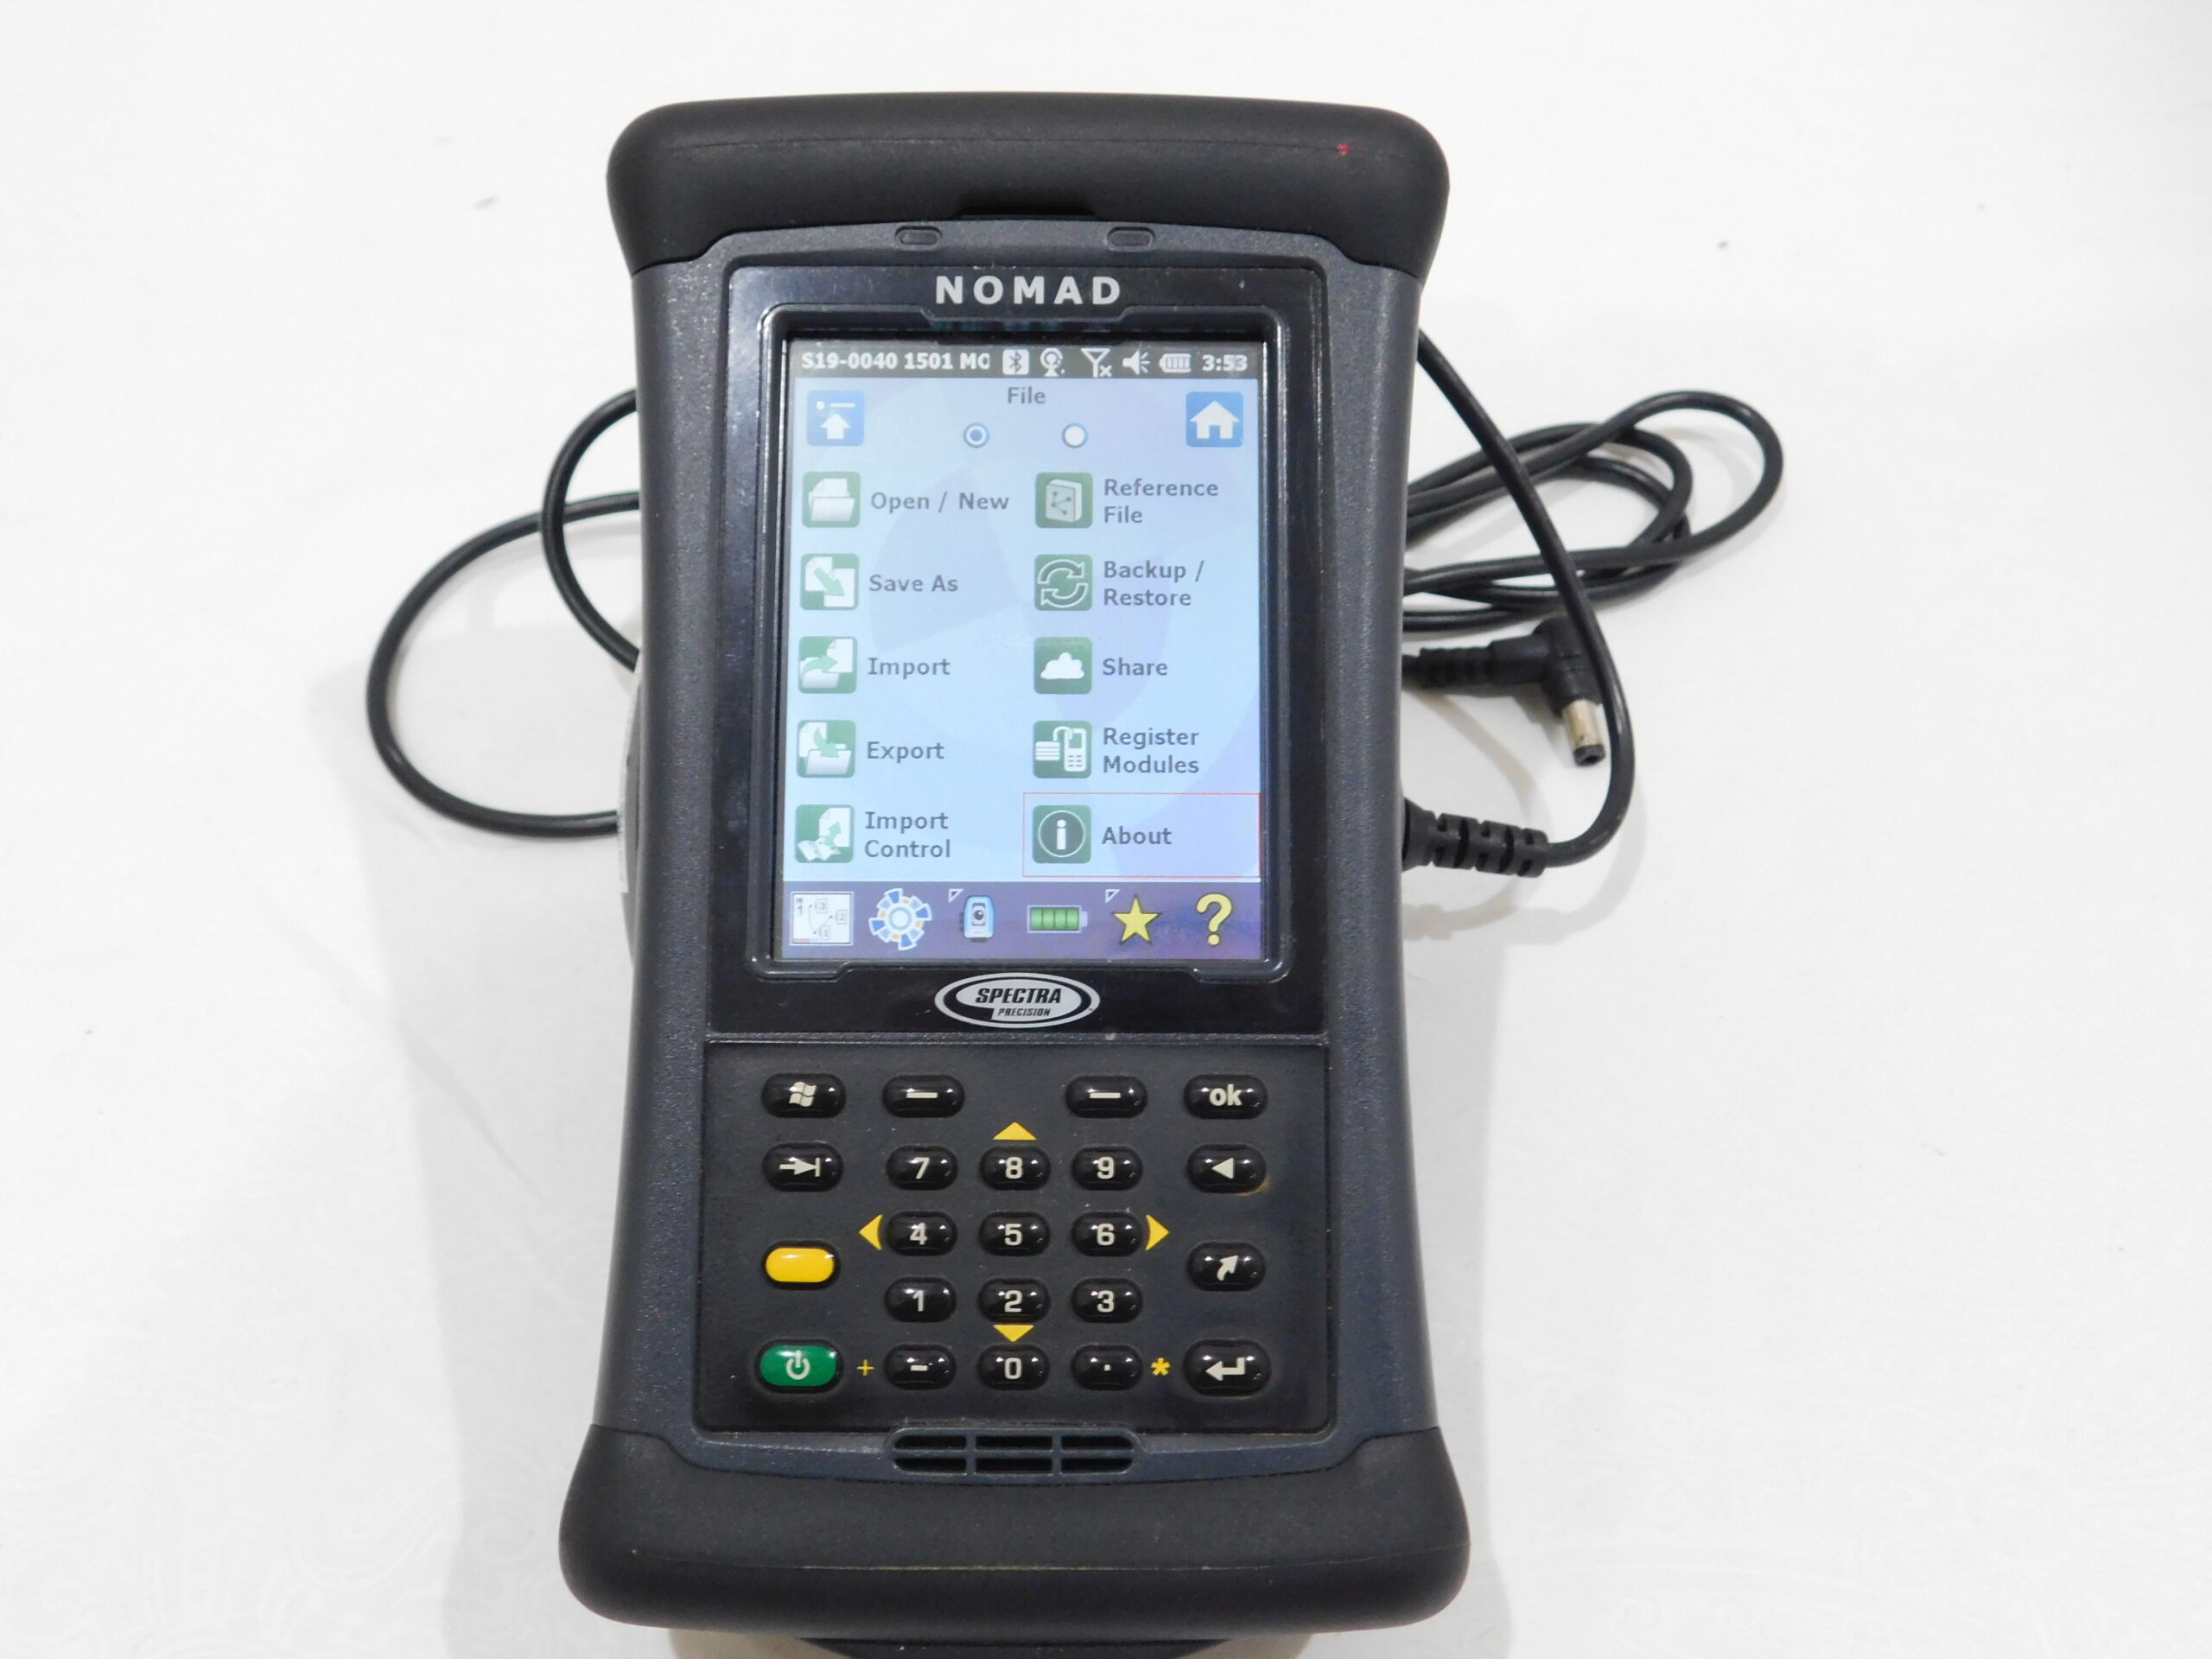 NOMAD 1050 GNSS